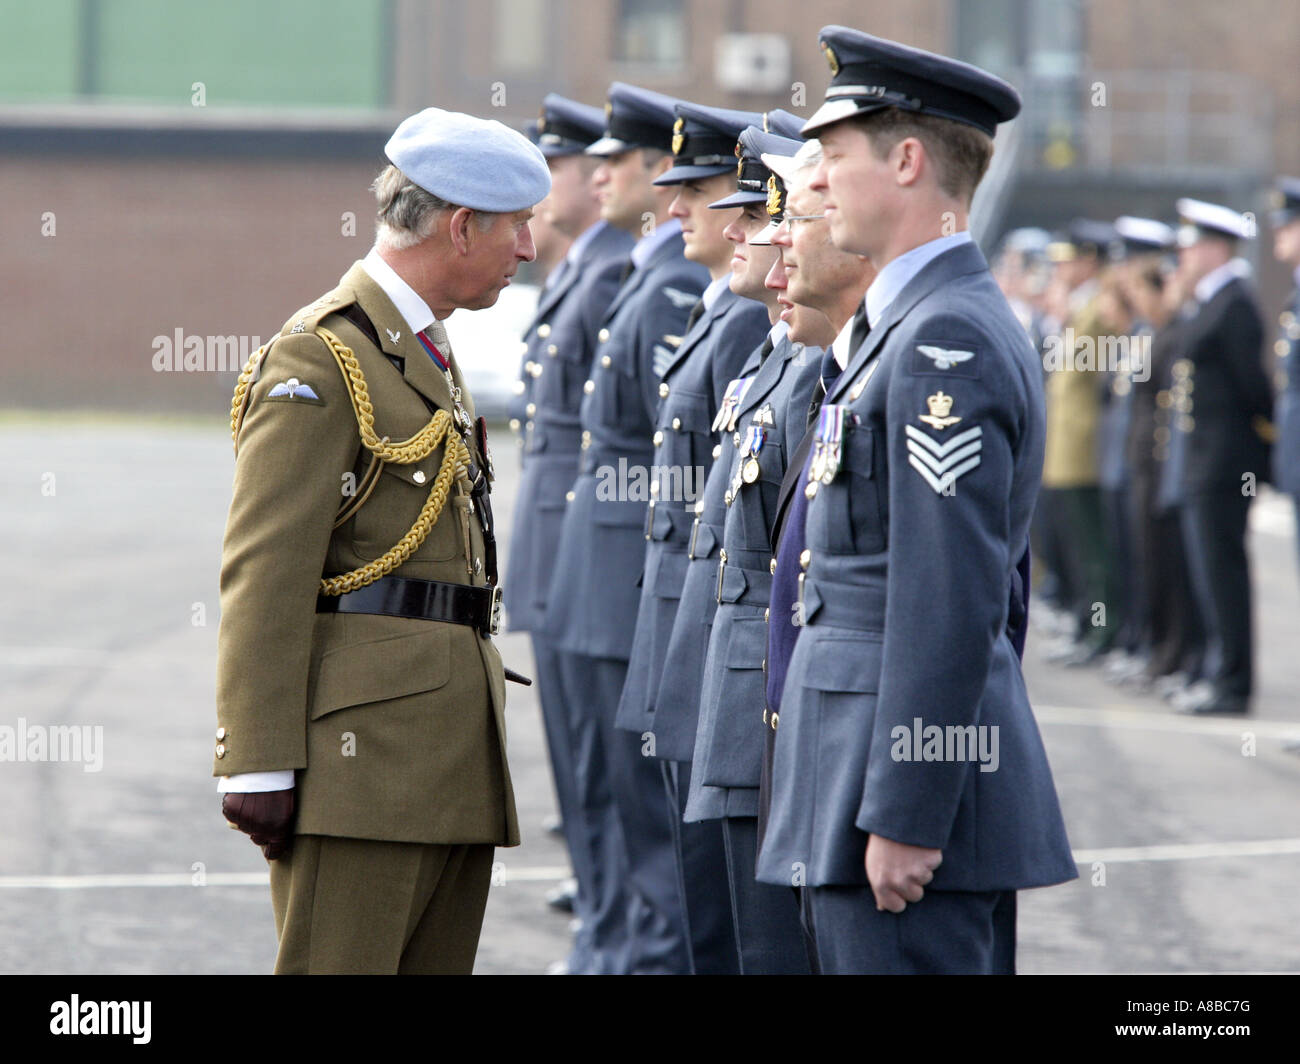 HRH Prince Charles, The Prince of Wales inspects officers at RAF Shawbury, the Helicopter Flying School Stock Photo